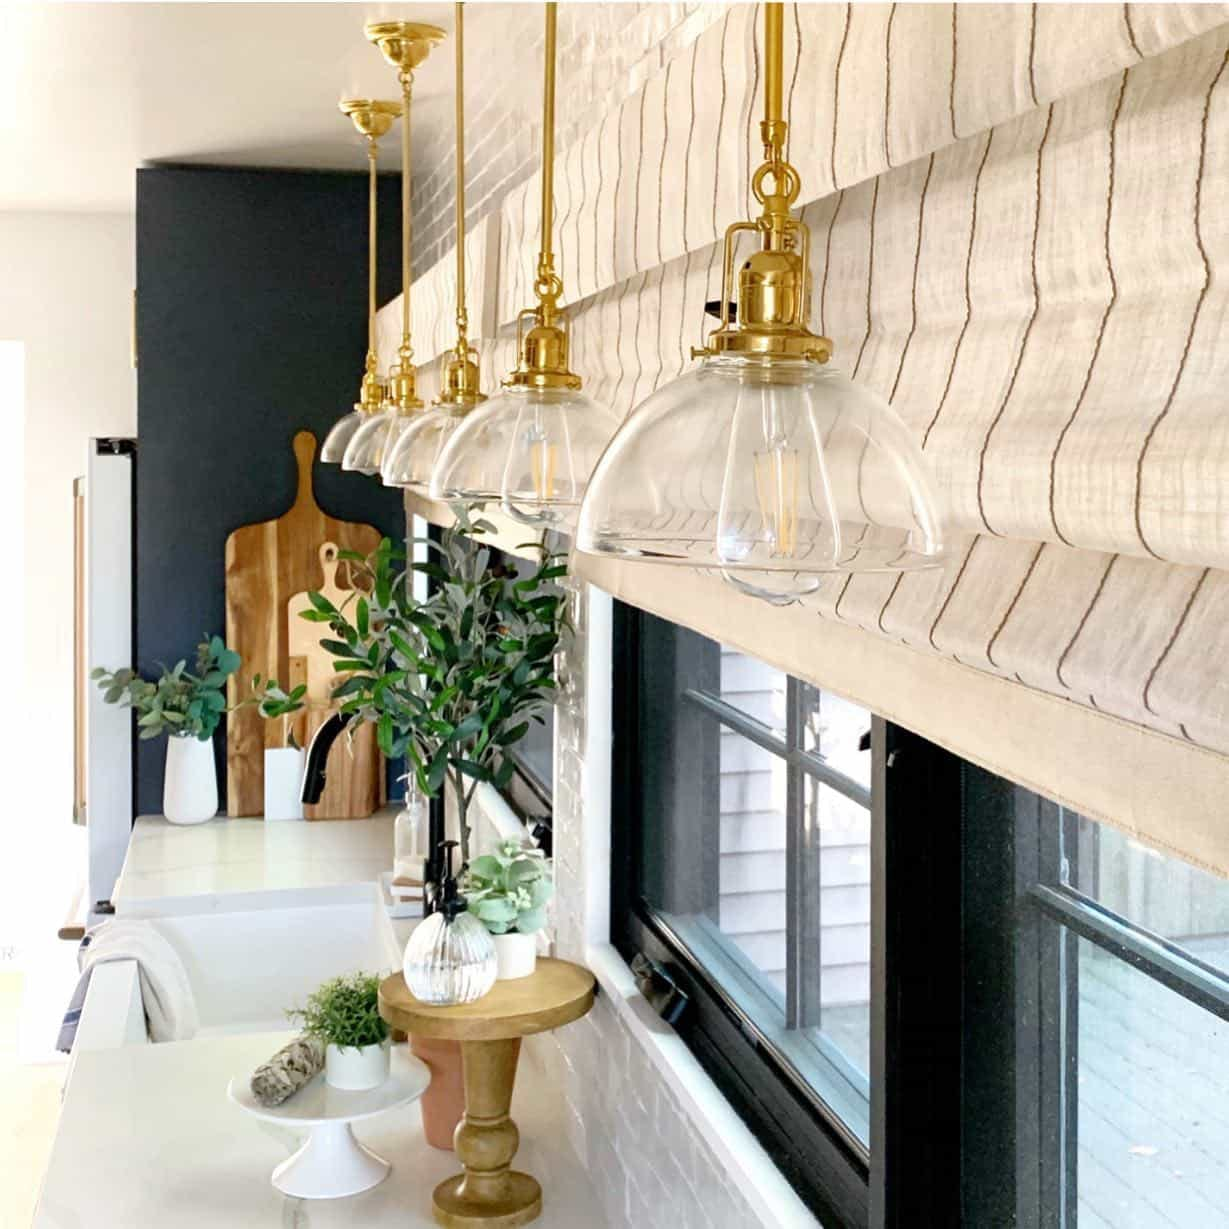 Kitchen windows with cream roman shades and brass pendant lights.